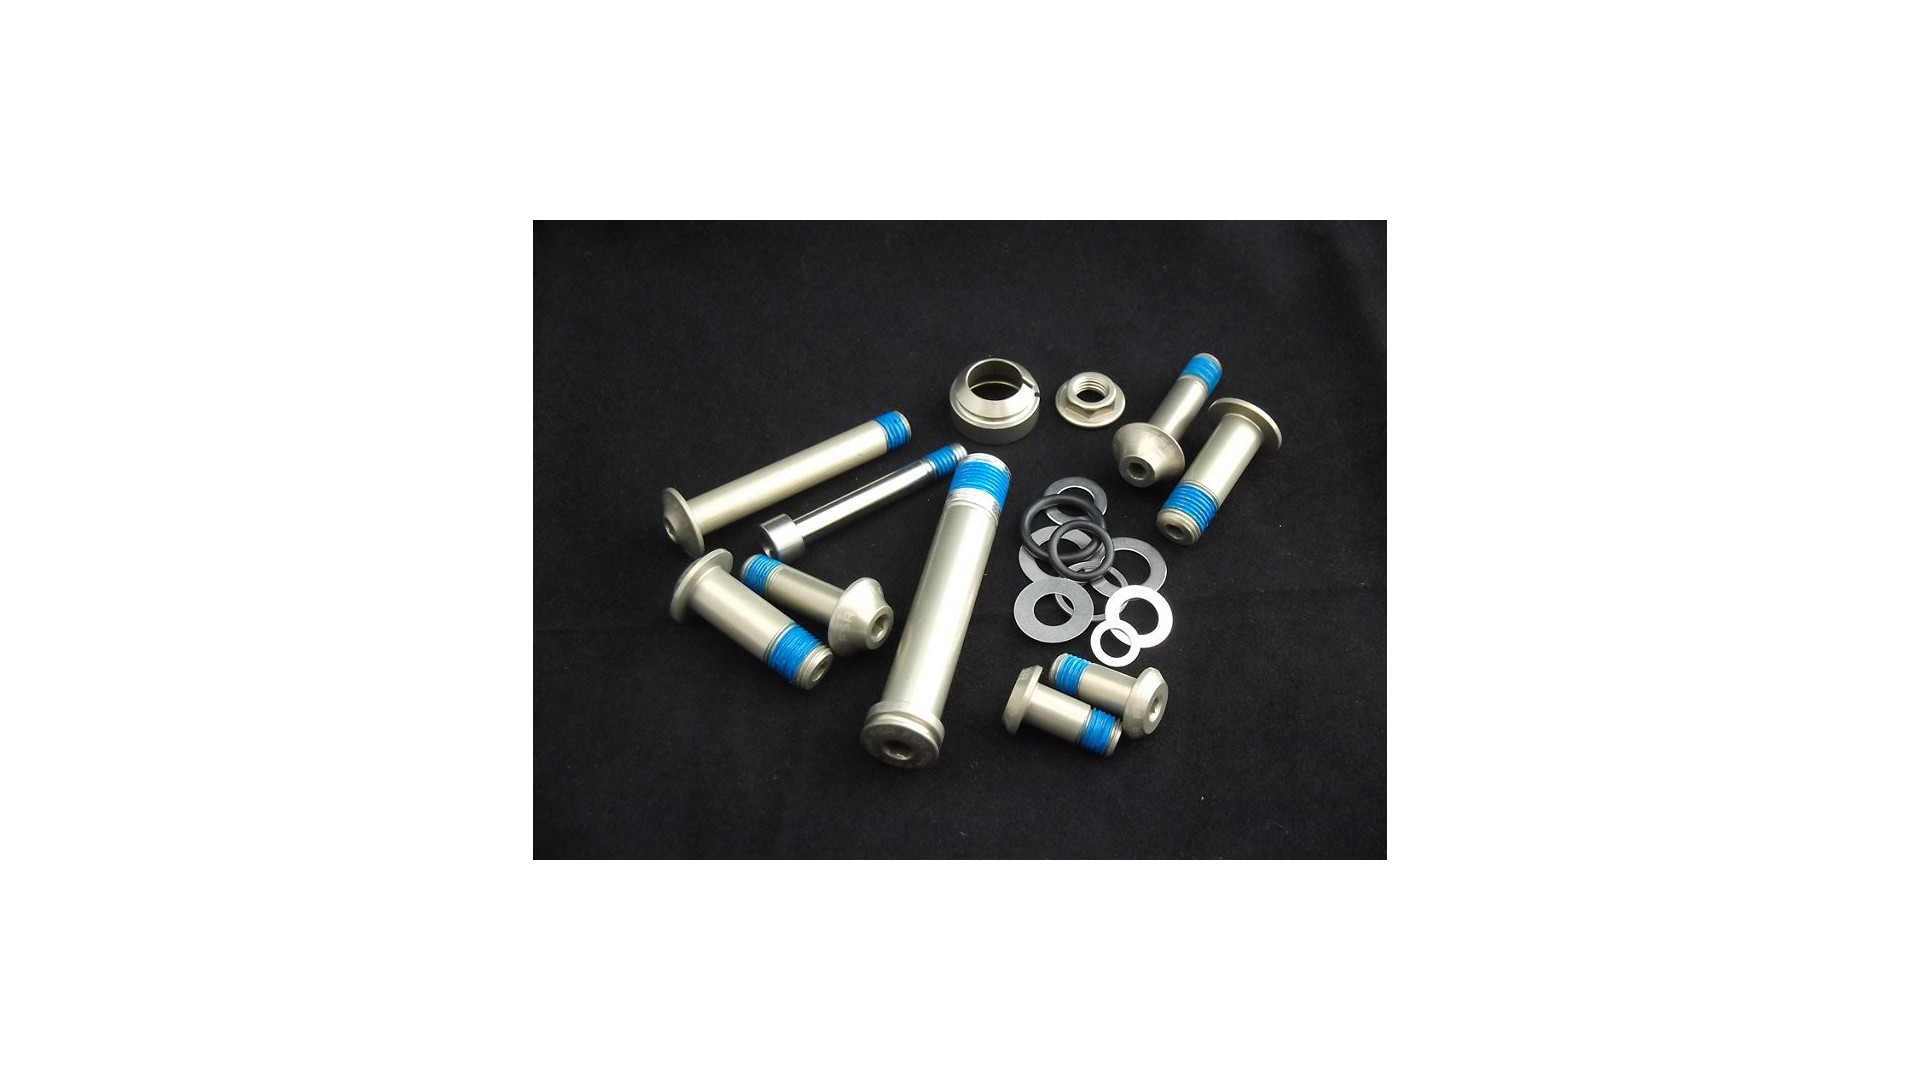 MY11-13 Epic Bolt Kit for Carbon Rear Triangle 2012 1 IBKBike.es